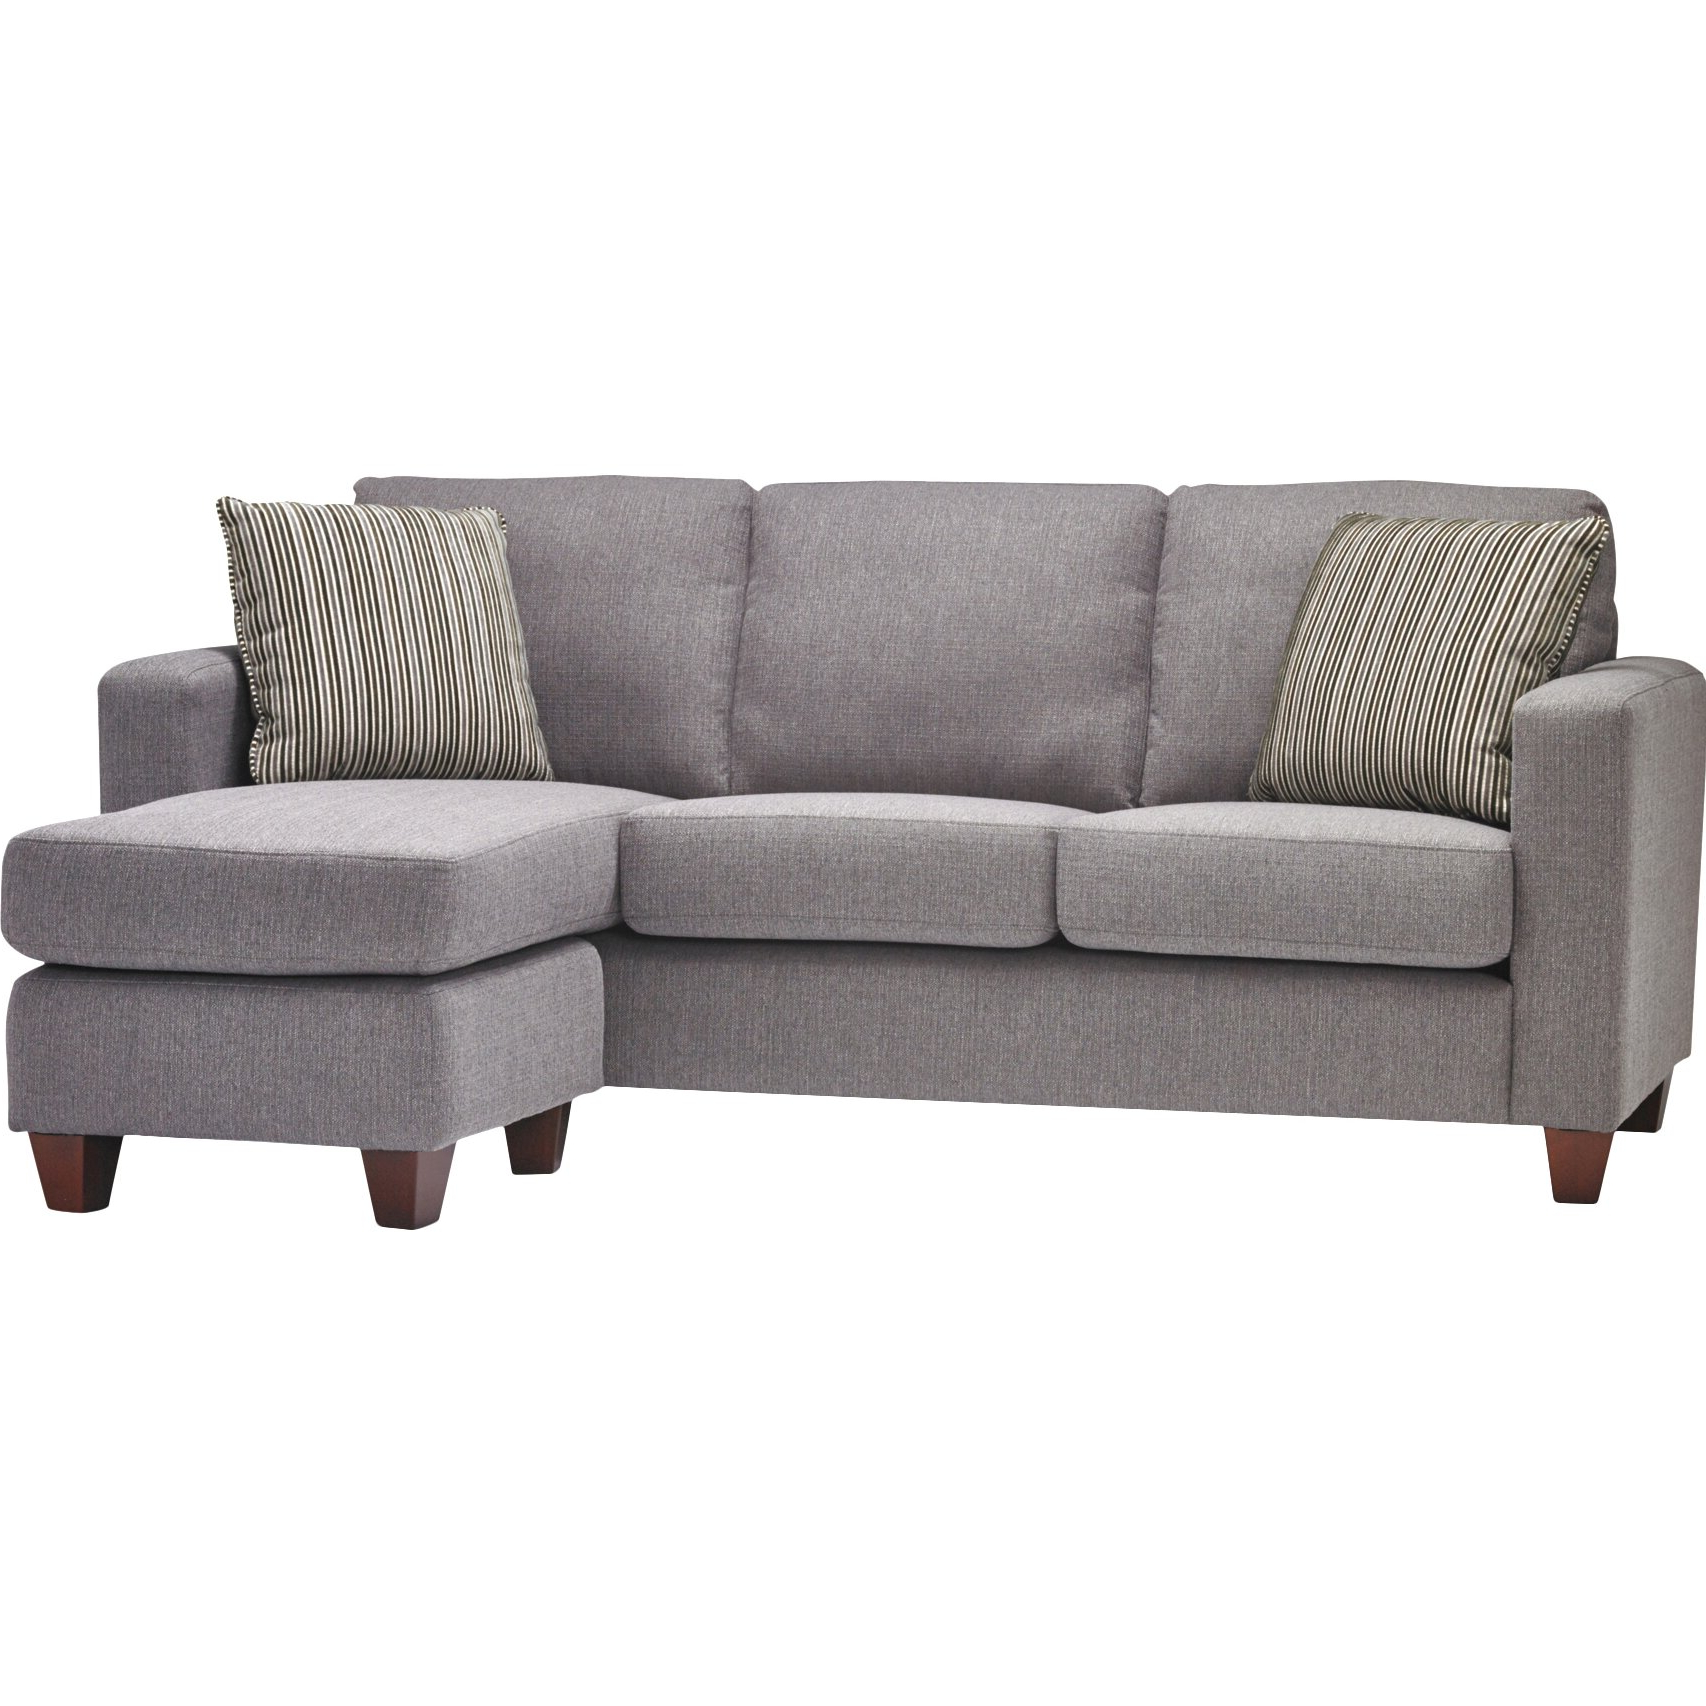 2018 Kiefer Right Facing Sectional Sofas In Hannah Right Facing Sectional Sofa (View 1 of 25)